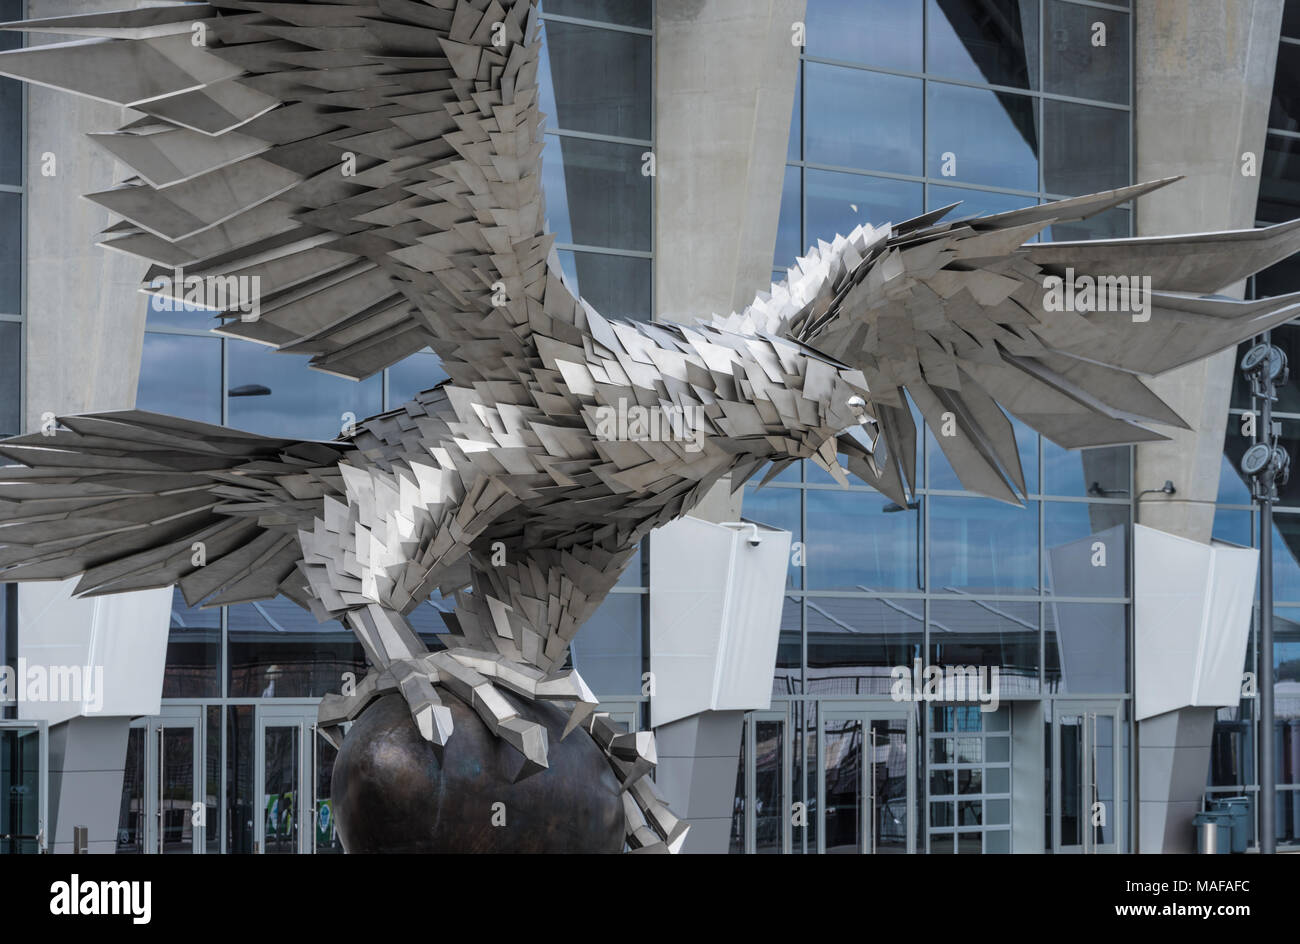 73000-pound-stainless-steel-sculpture-of